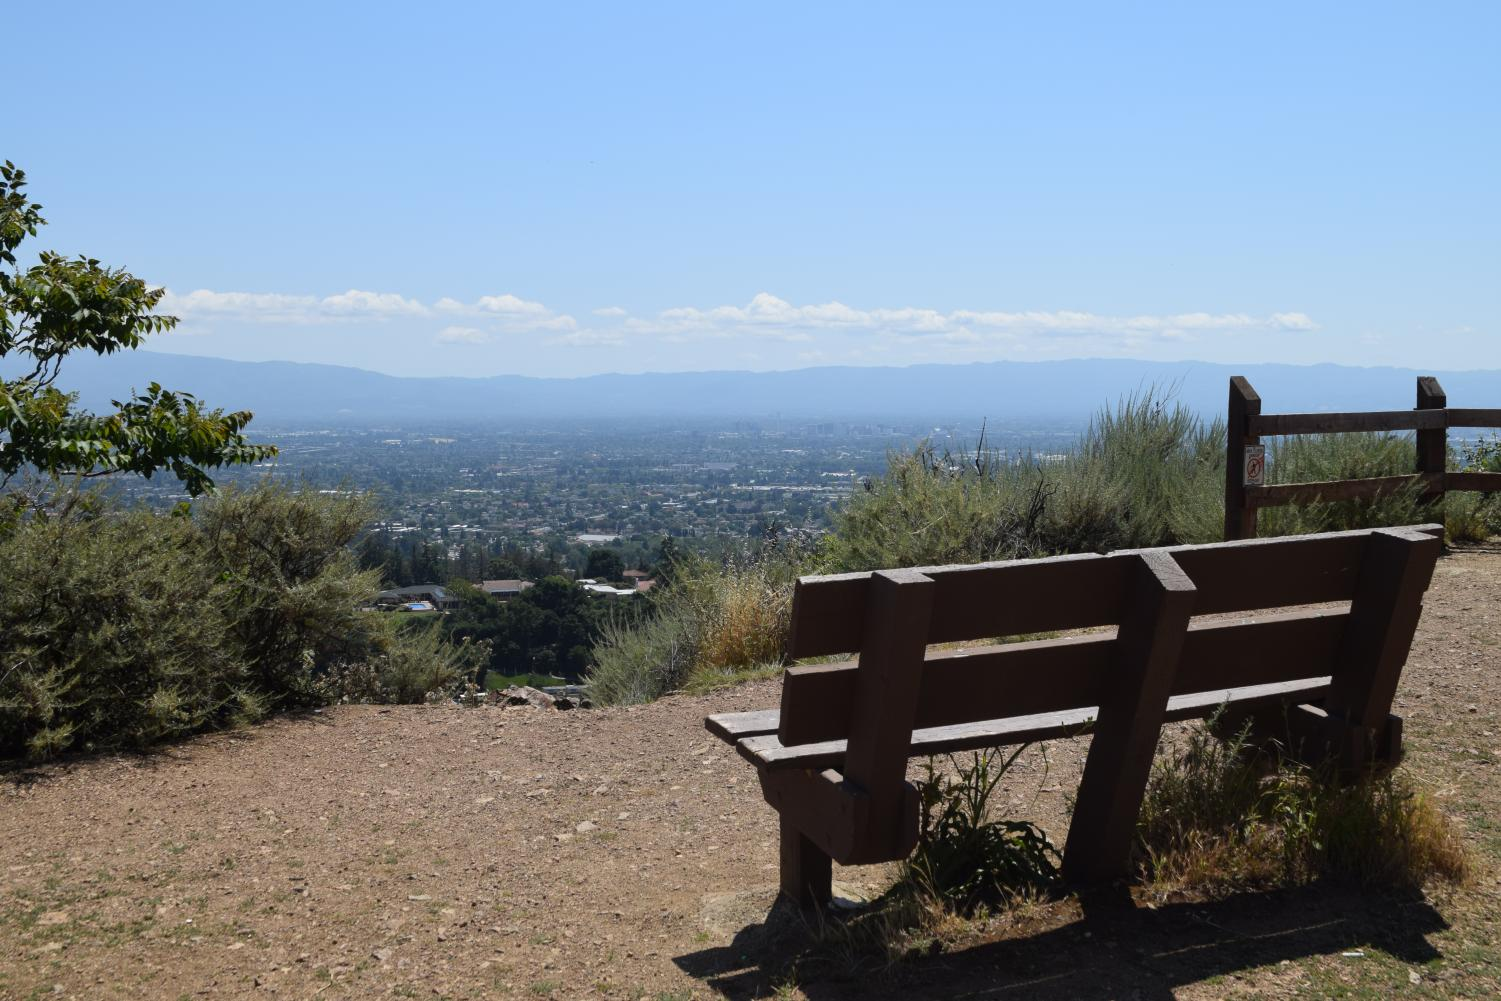 Wooden+bench+at+the+end+of+the+hike+that+overlooks+the+city+of+San+Jose%2C+the+blue+sky+and+mountains.